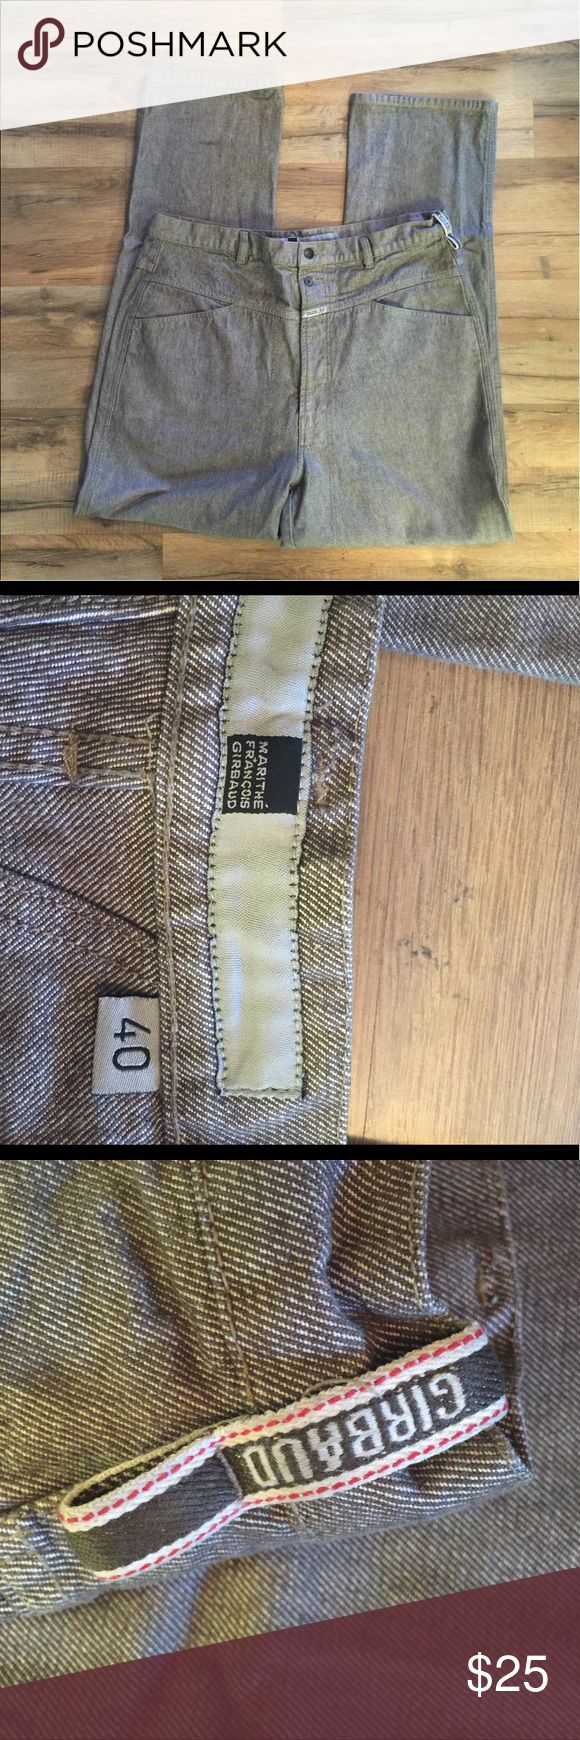 Men's Marithe Francois Girbaud jeans Men's Marithe Francois Girbaud jeans size 40 waist in like new condition .....the measurements laying flat are. Waist 20 inches. Inseam 33 1/2 inches, Front rise 16 inches, leg width 9 1/2 inches. marithe francois girbaud Jeans Straight